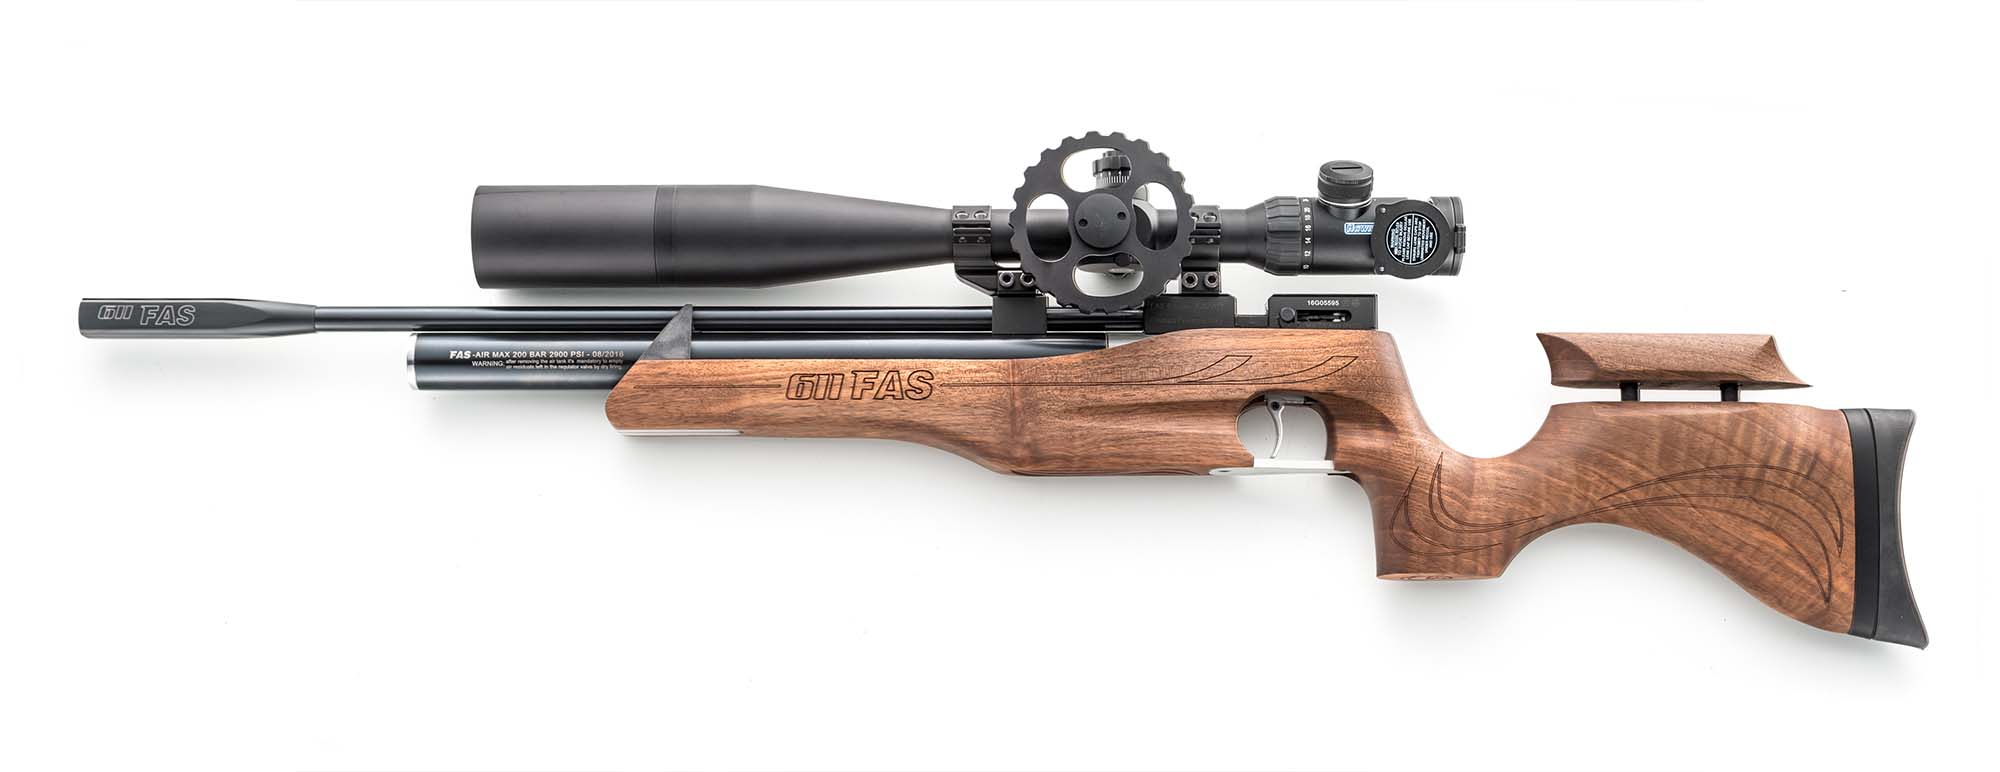 FAS AR611, a new PCP air rifle from Italy